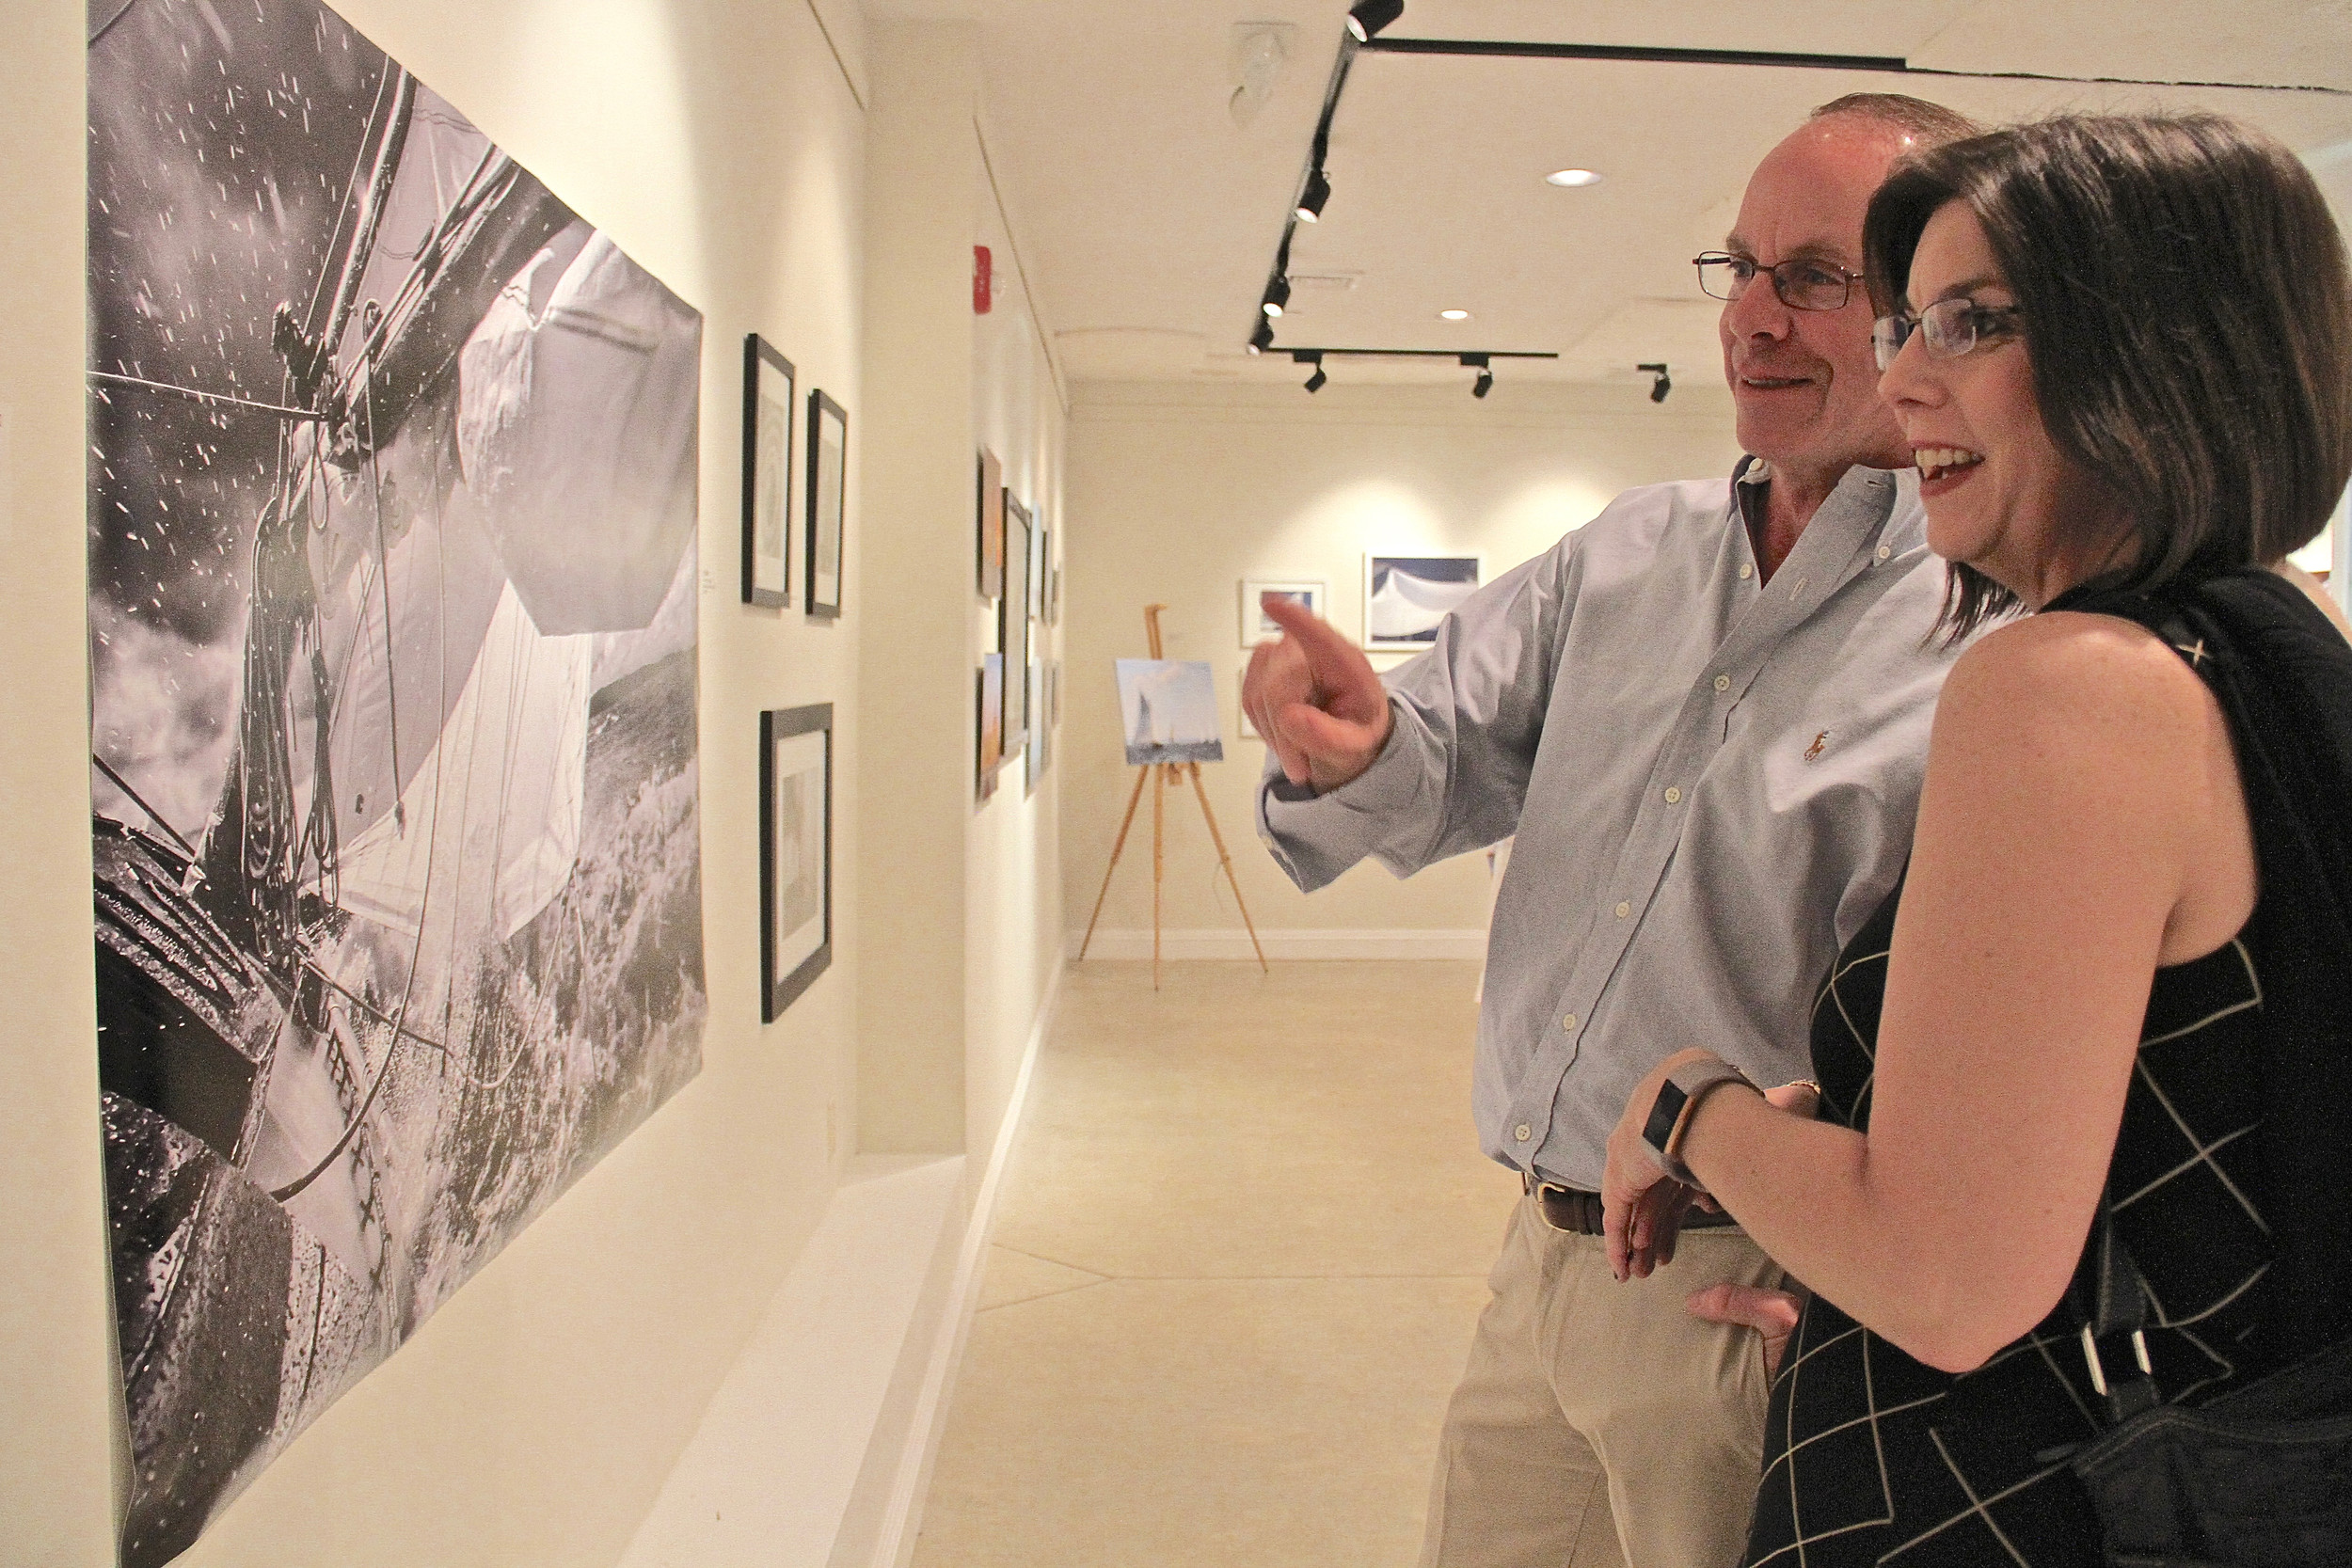 Alexandra Carton and Dale Morisco admired the photographs at Yana's opening reception held on May 19.